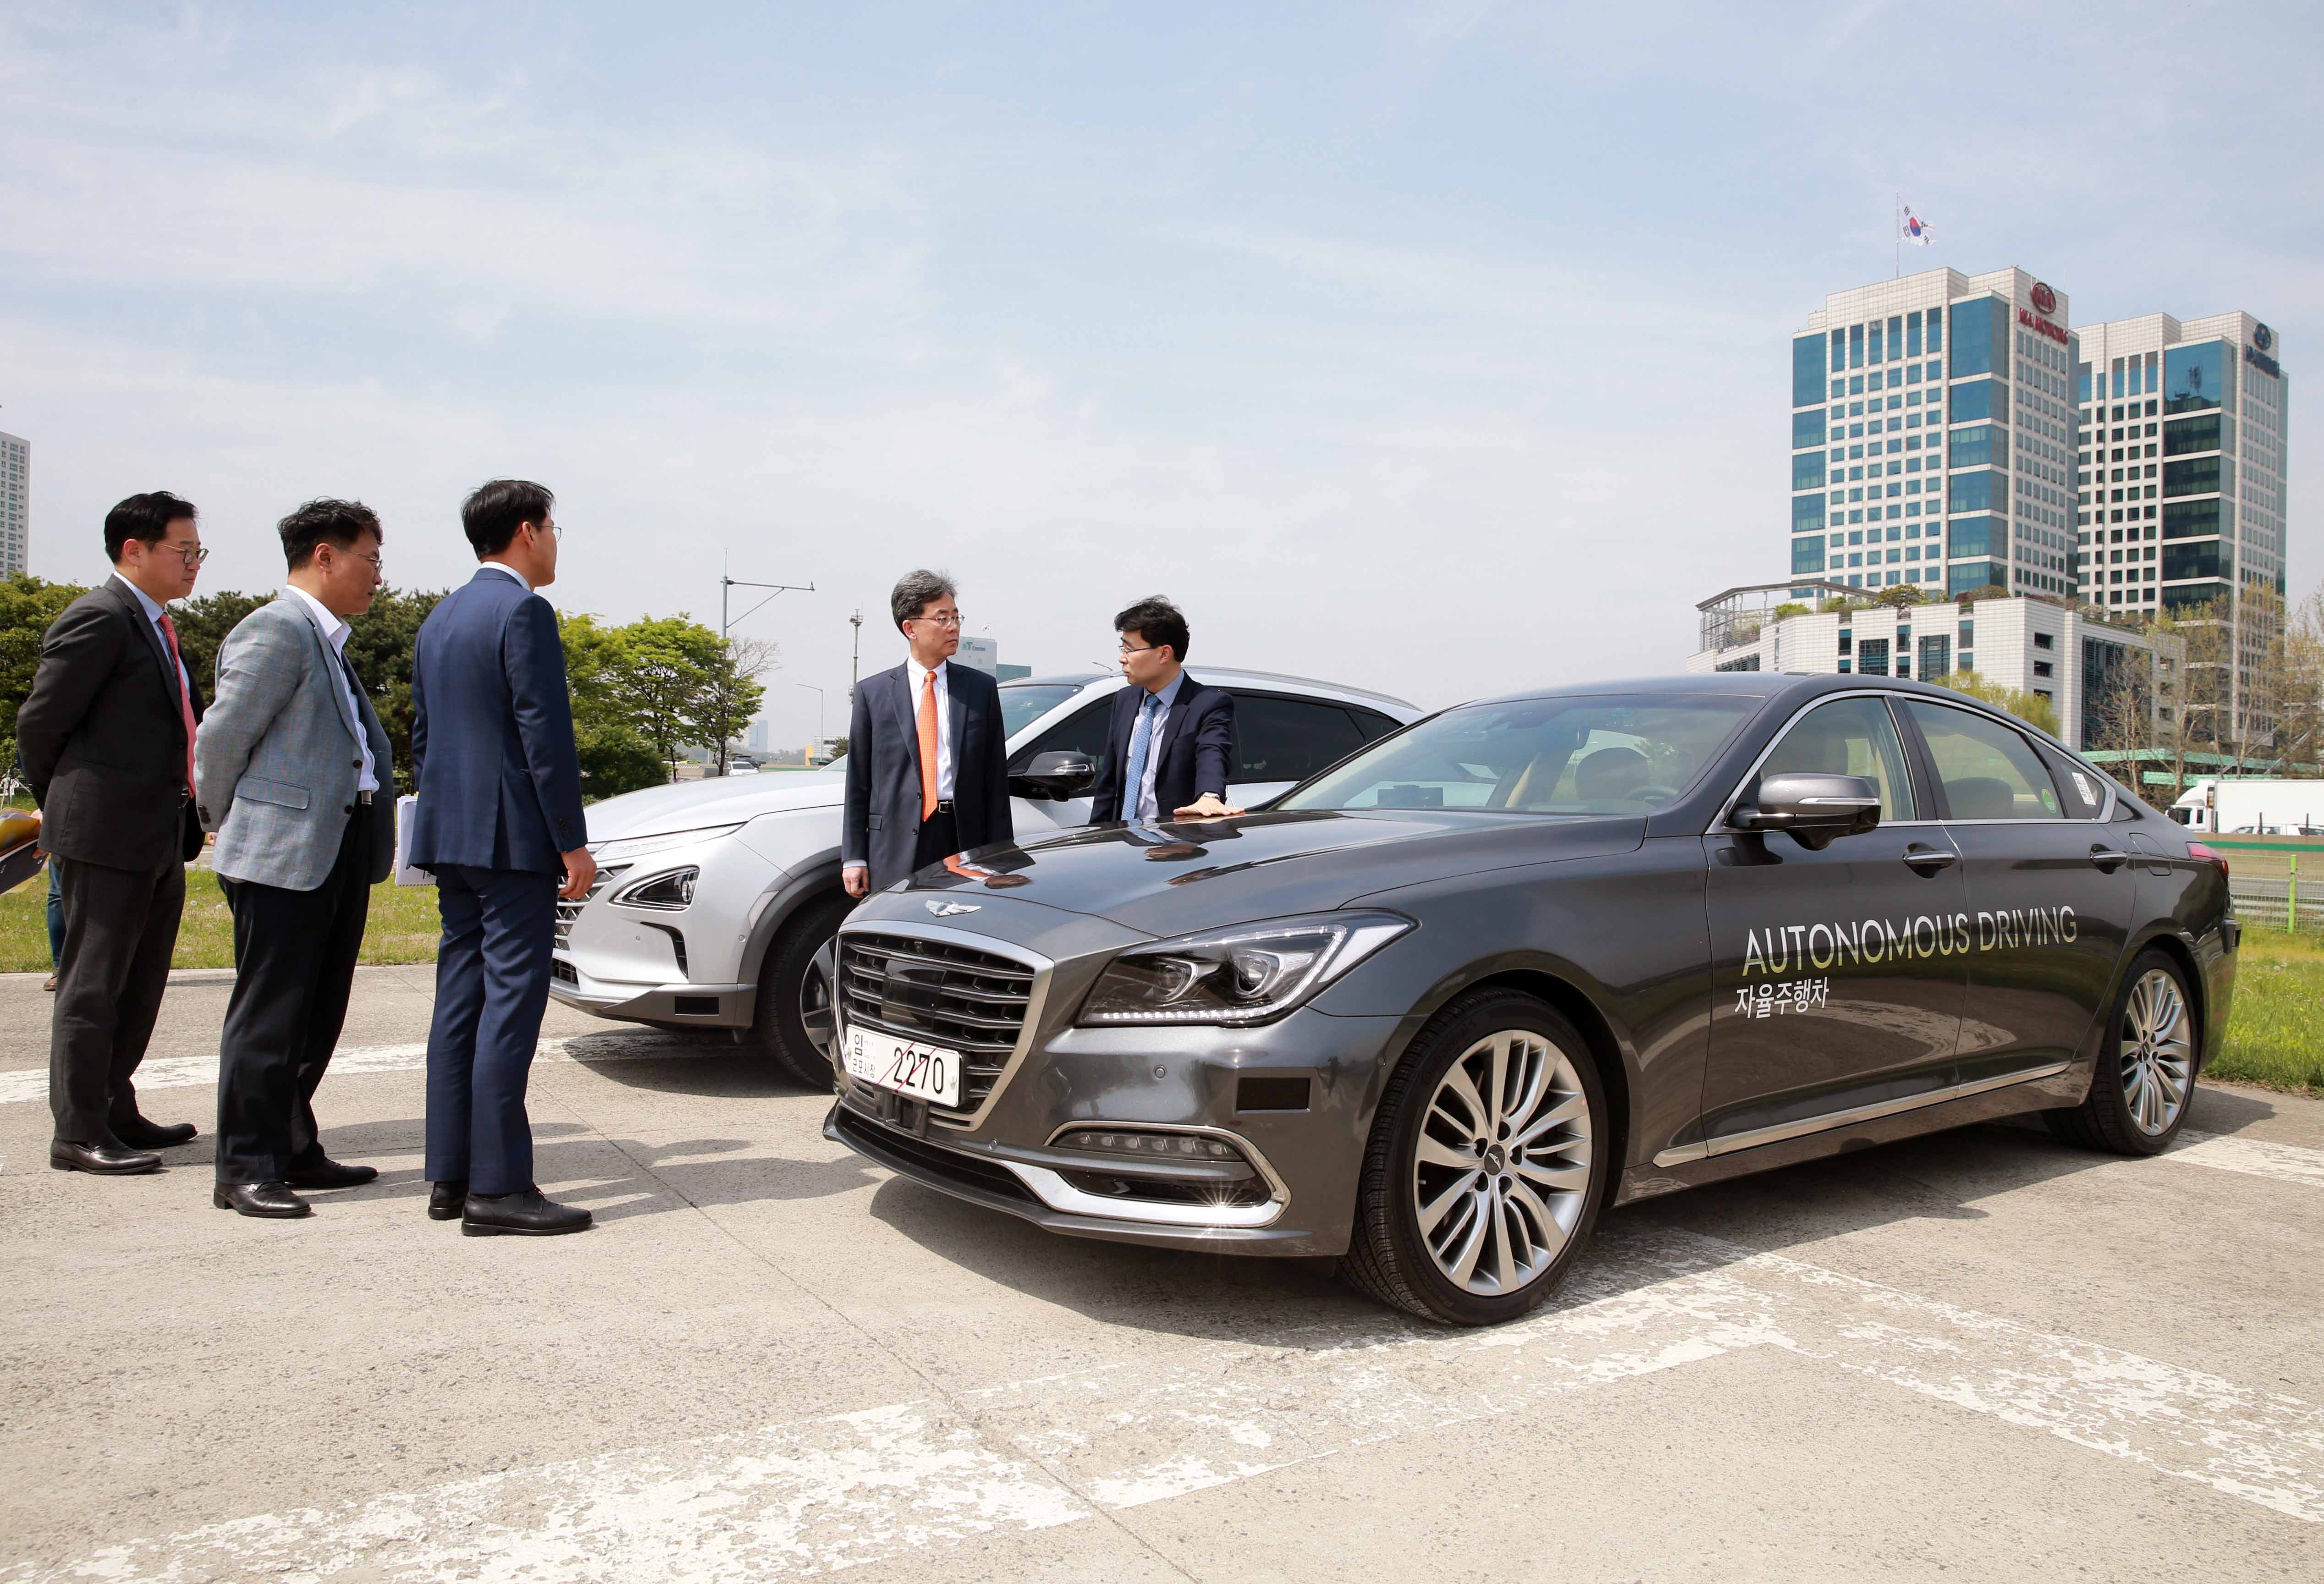 Trade Minister Kim visits R&D center for self-driving and eco-friendly cars